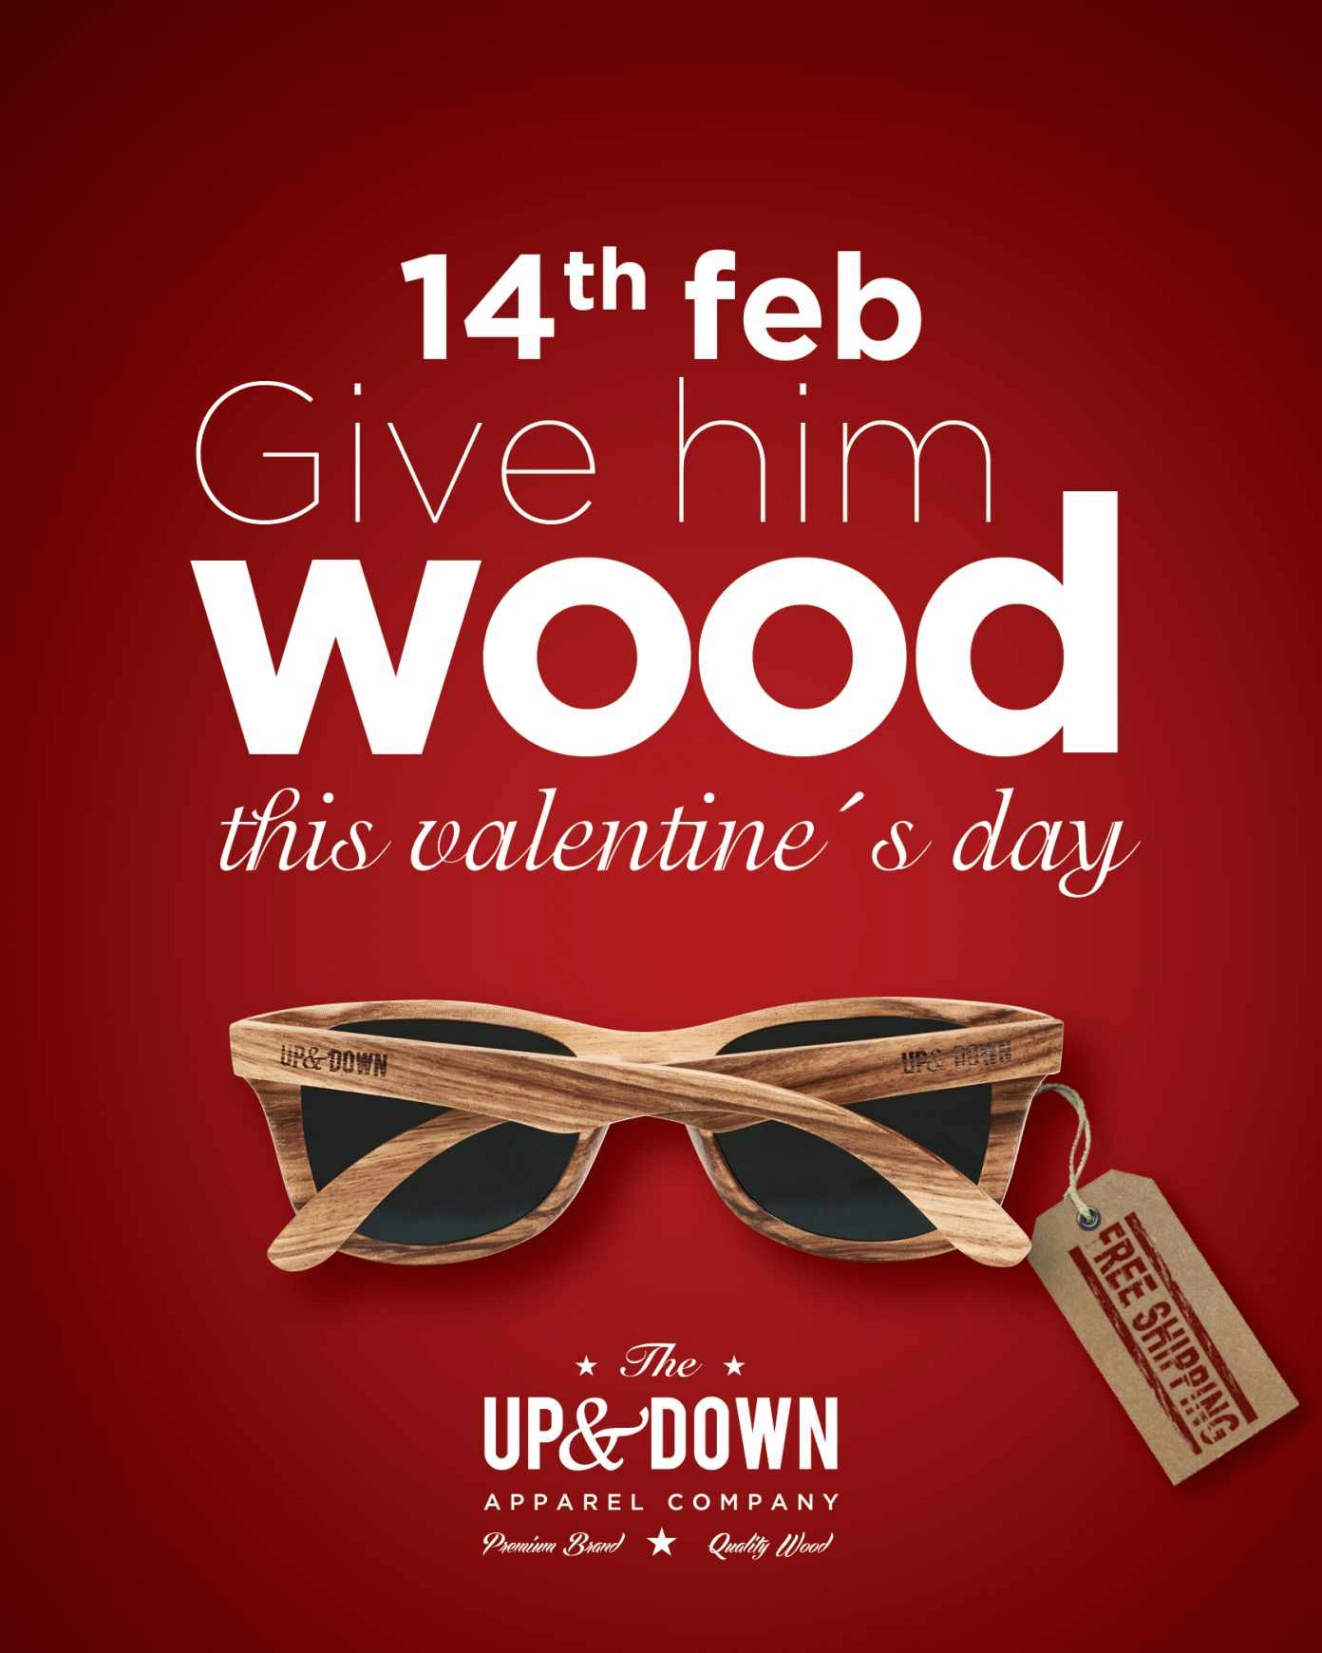 The Up Down Apparel Company Valentine S Day Ad Give Him Wood